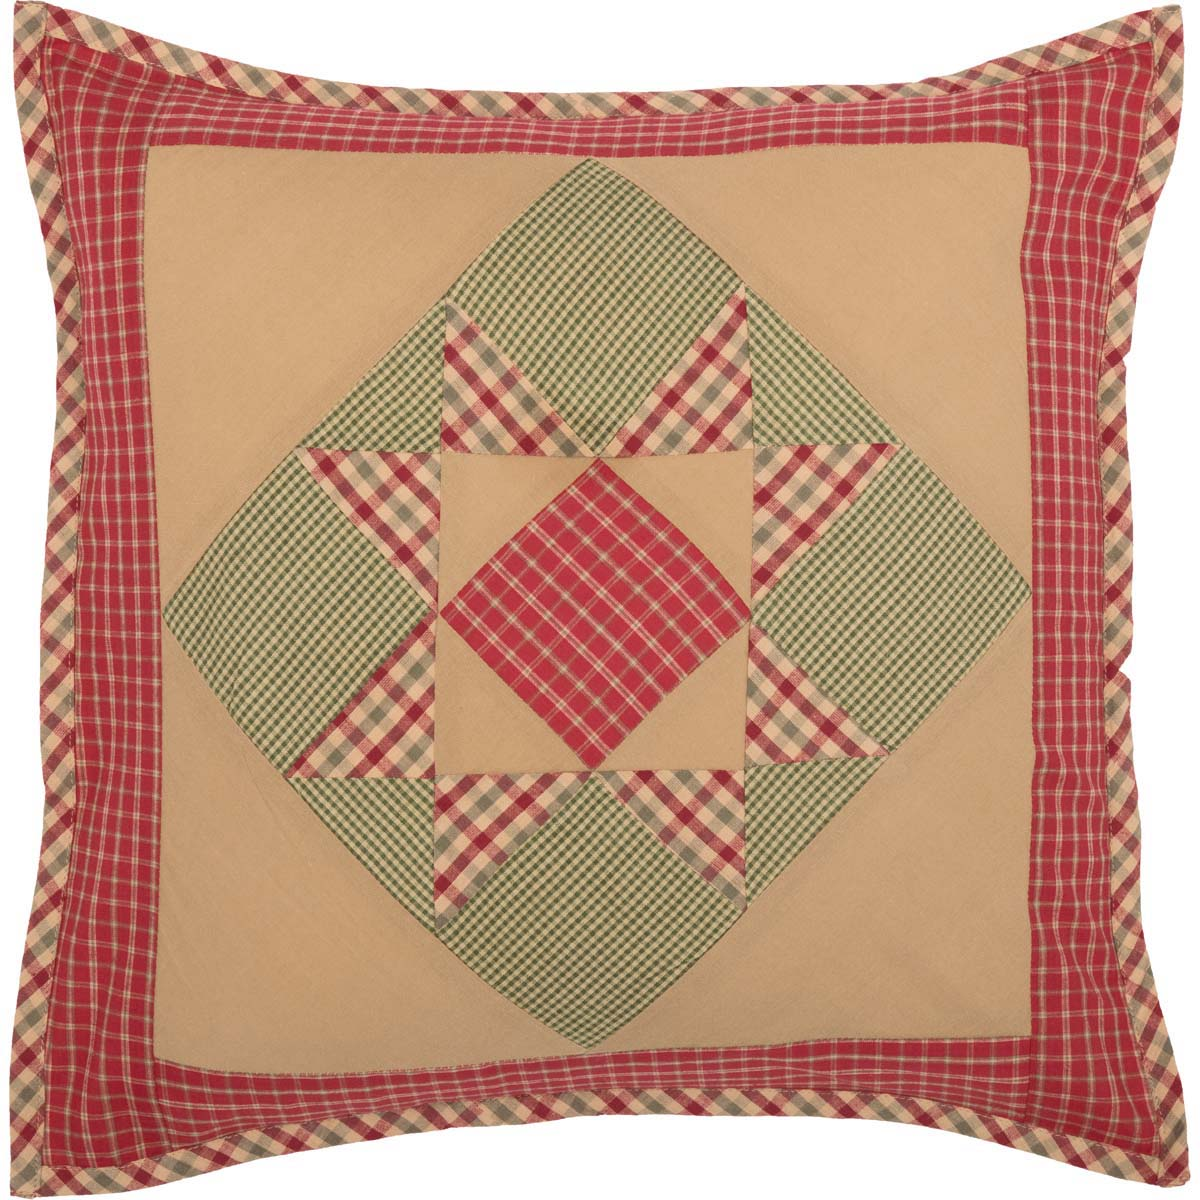 Dolly Star Patchwork Pillow 18x18